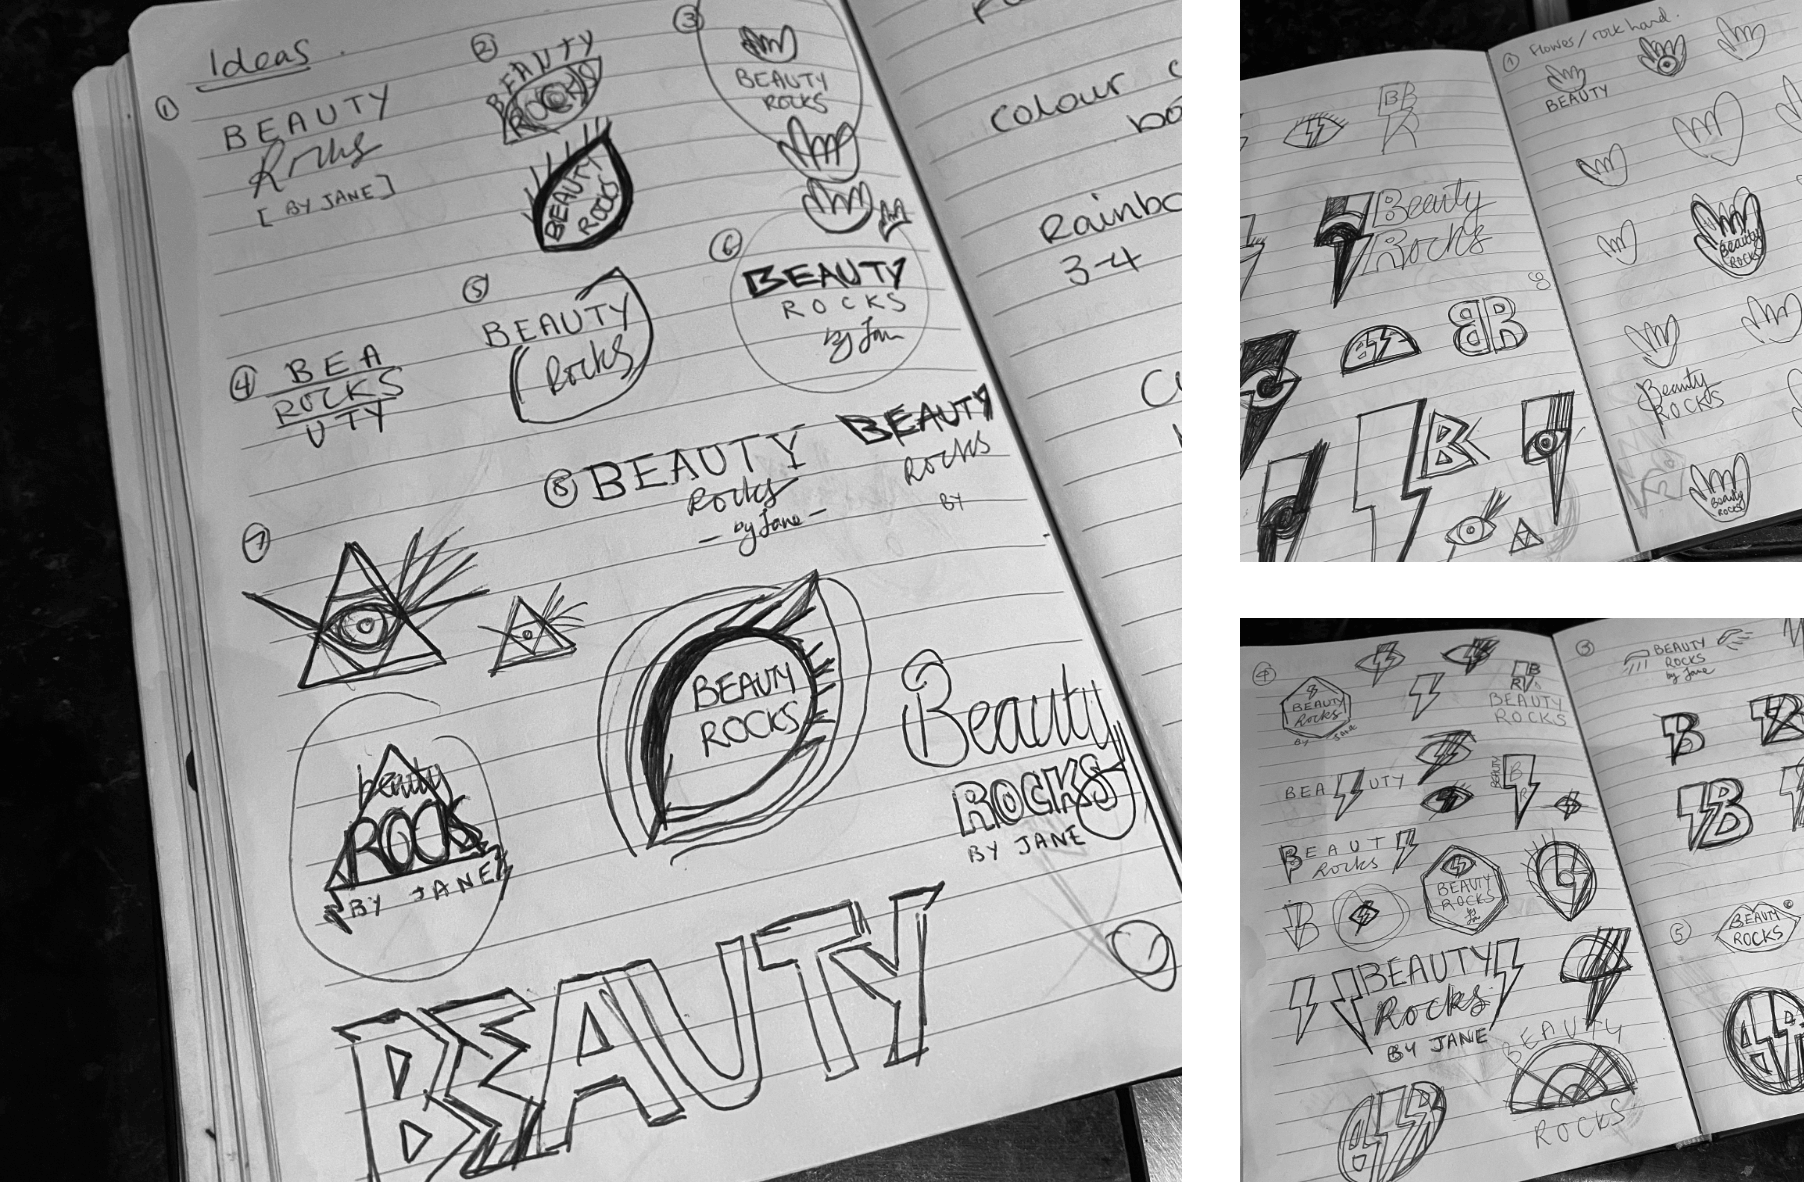 br_sketches@2x